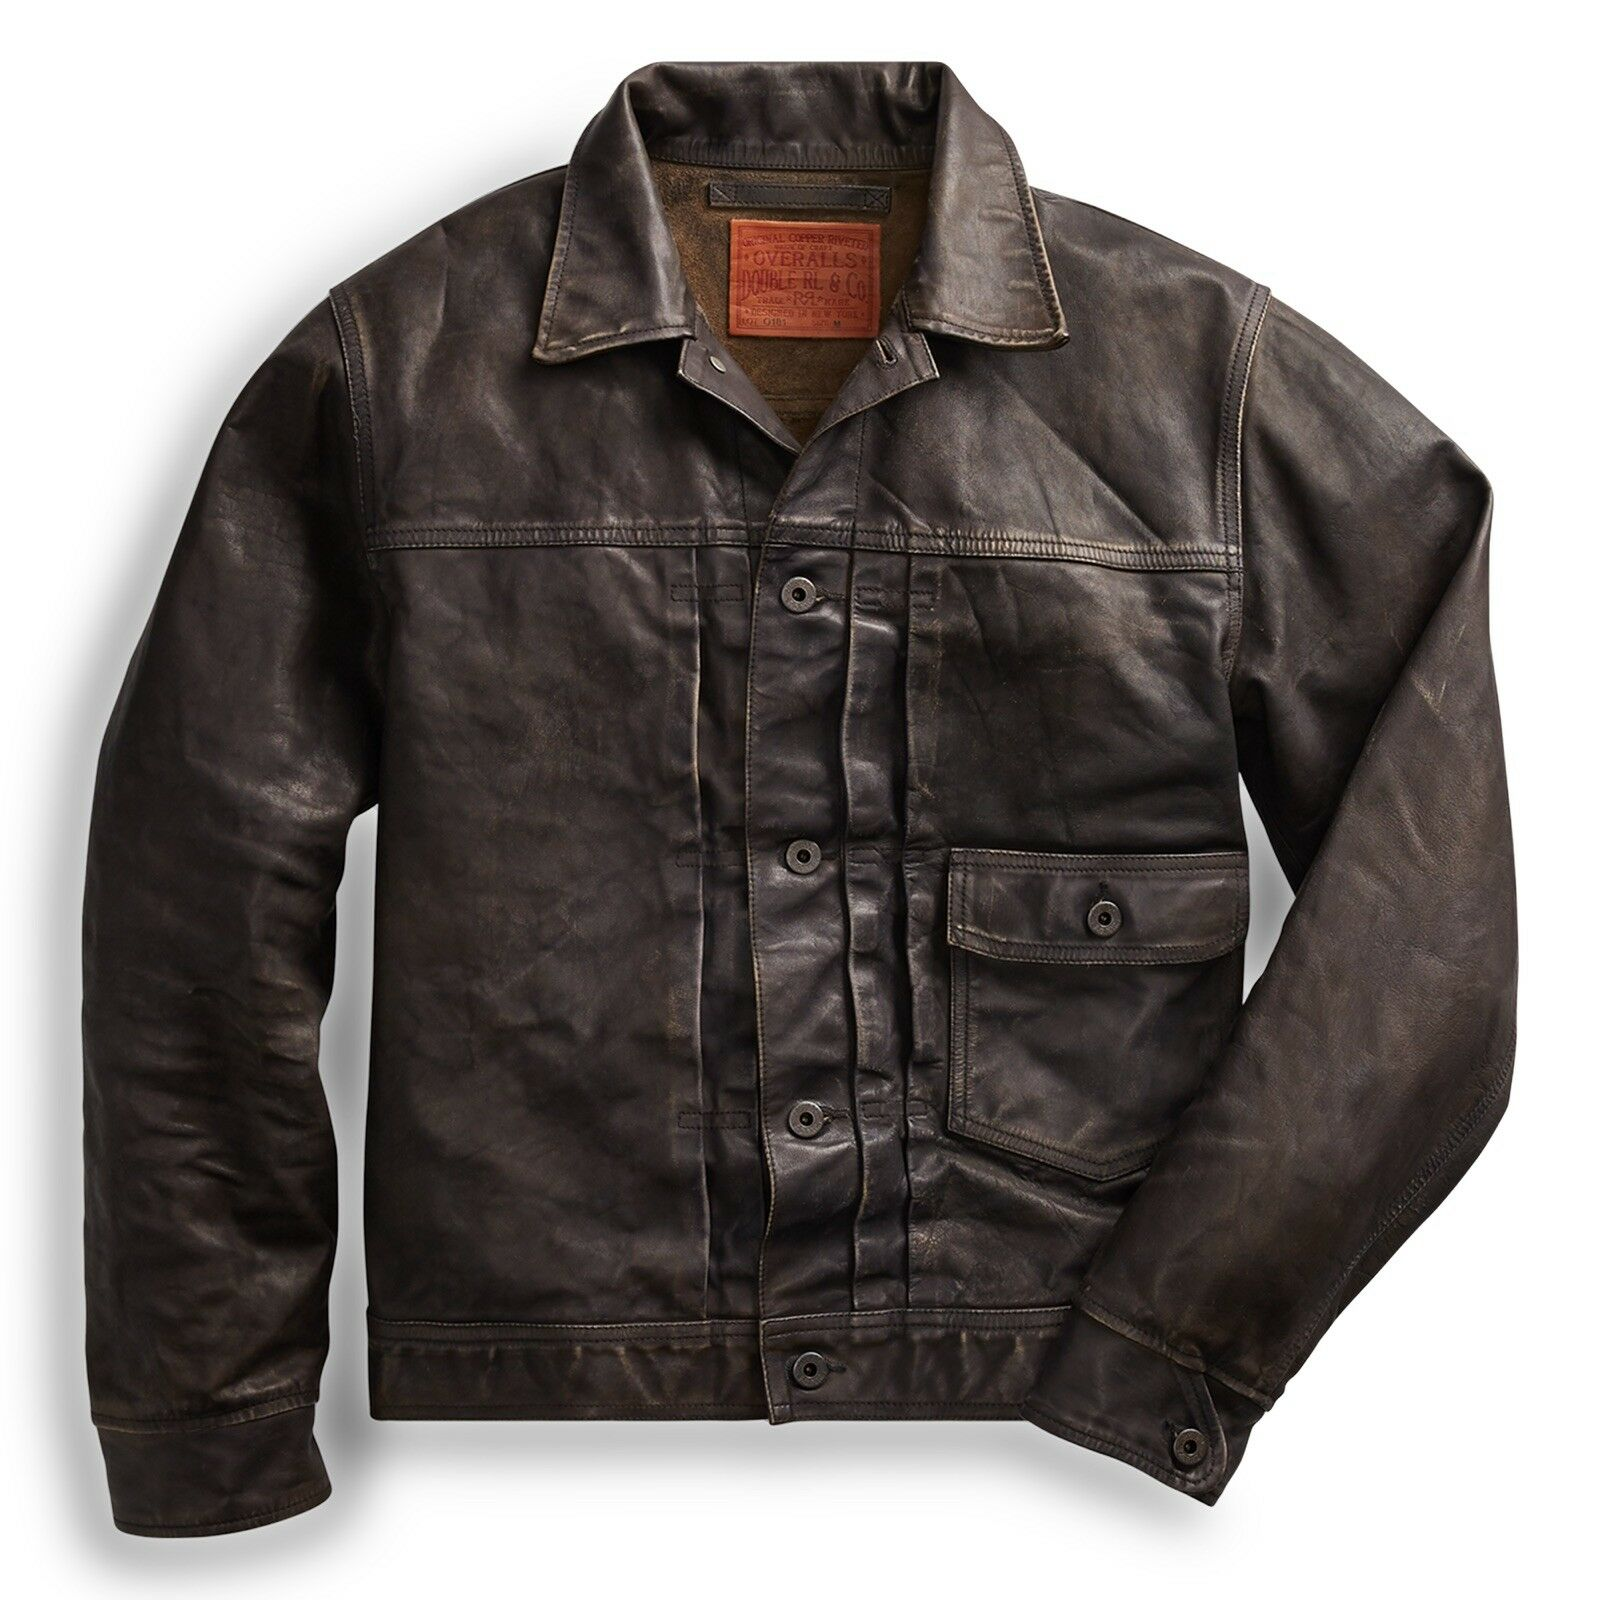 9ca64954d Leather Trucker Levi's / Lee / Type-whatever jackets! | Page 29 ...